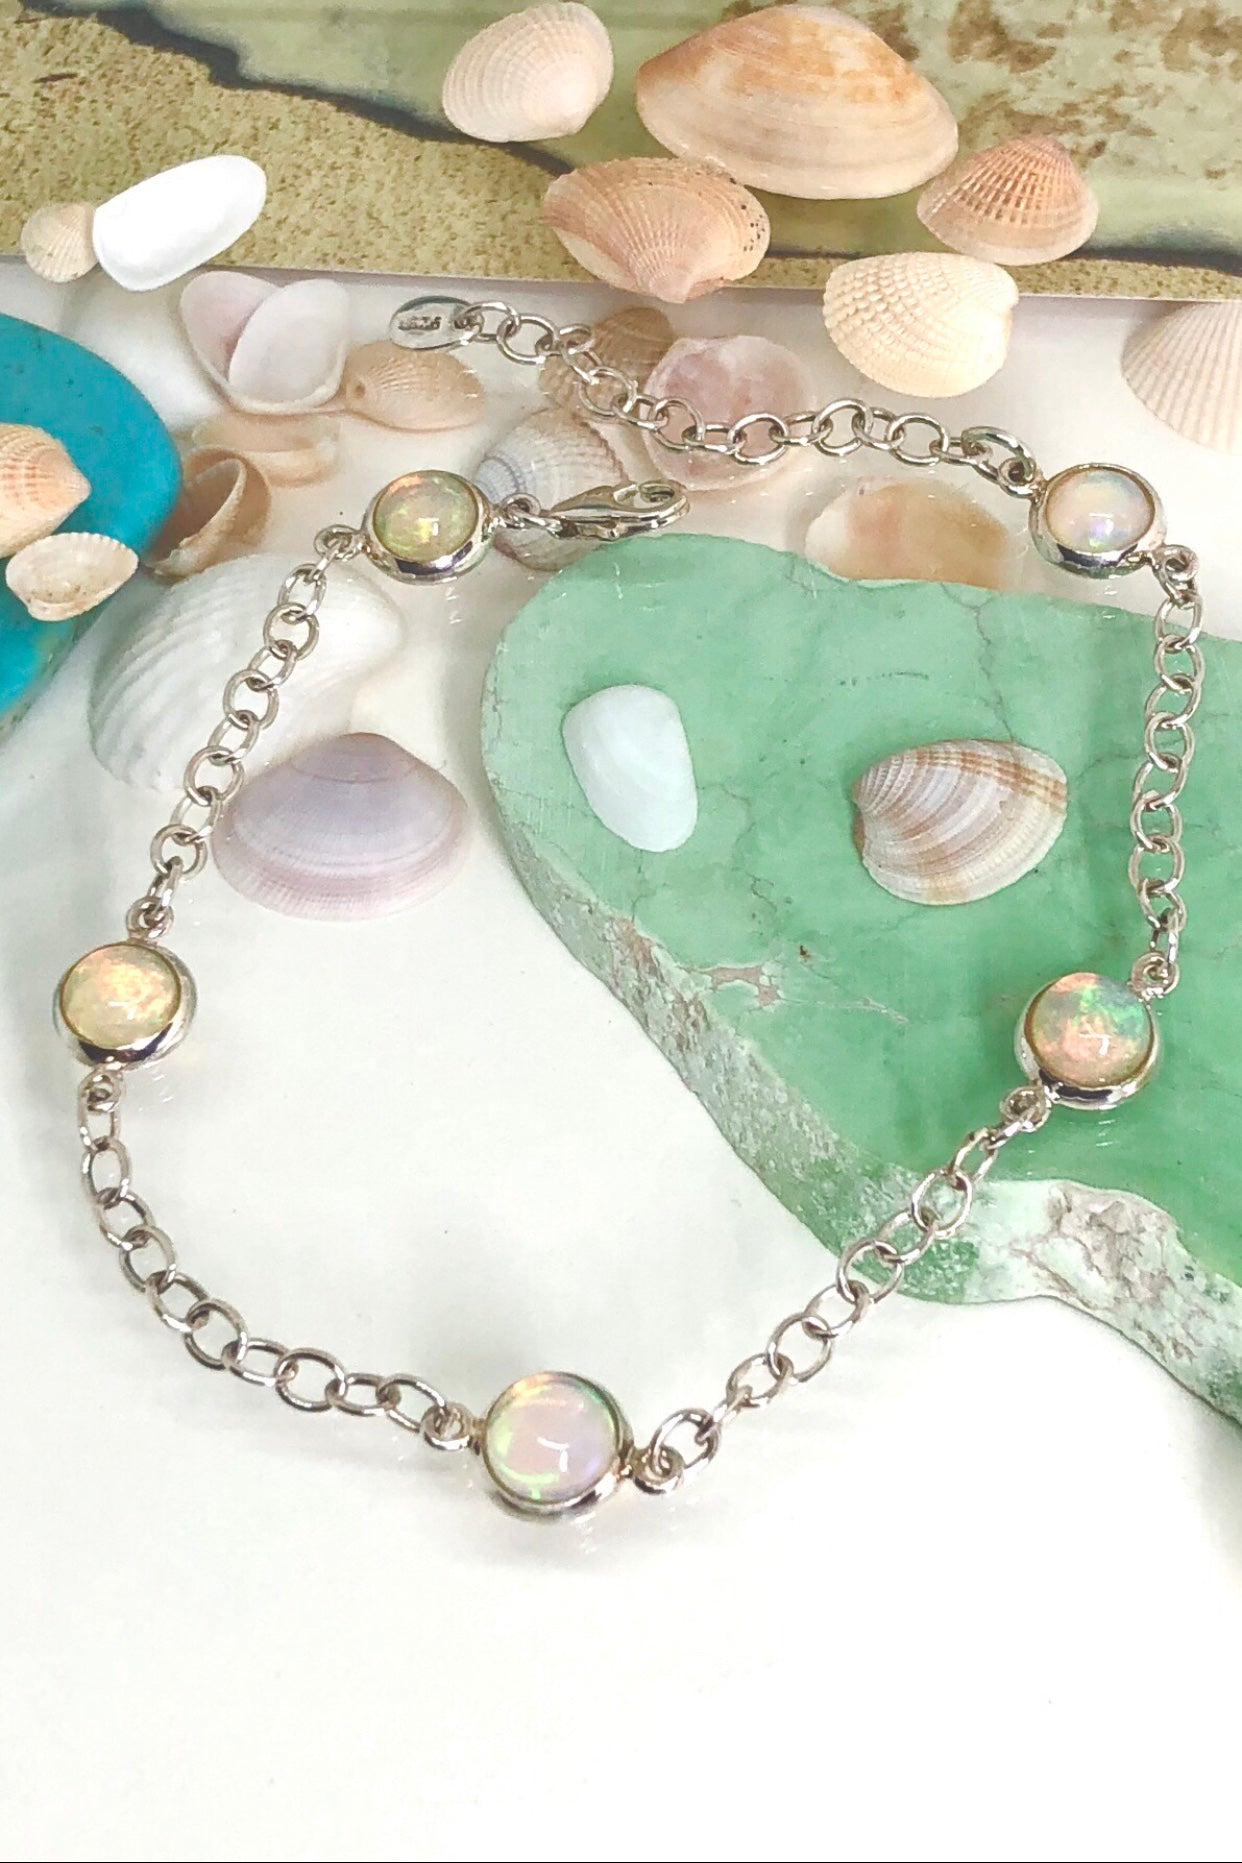 Oracle Bracelet Opal Gems is a real little beauty, with five colourful little opal gemstones each rim set in silver and joined with a silver chain